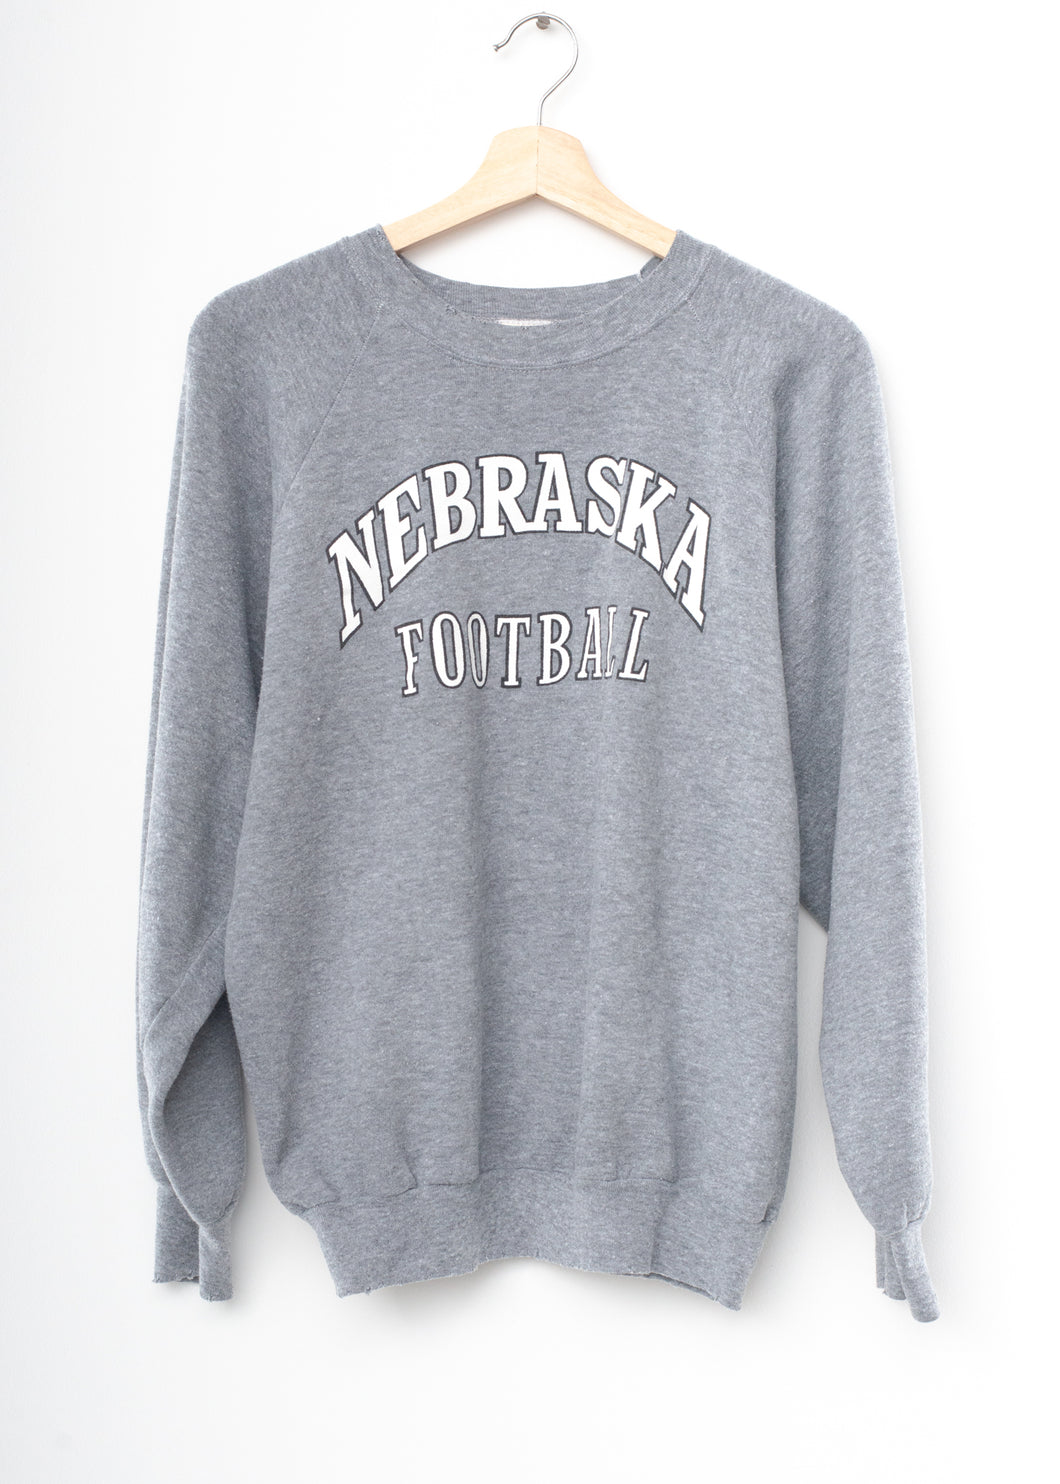 Nebraska Football Sweatshirt